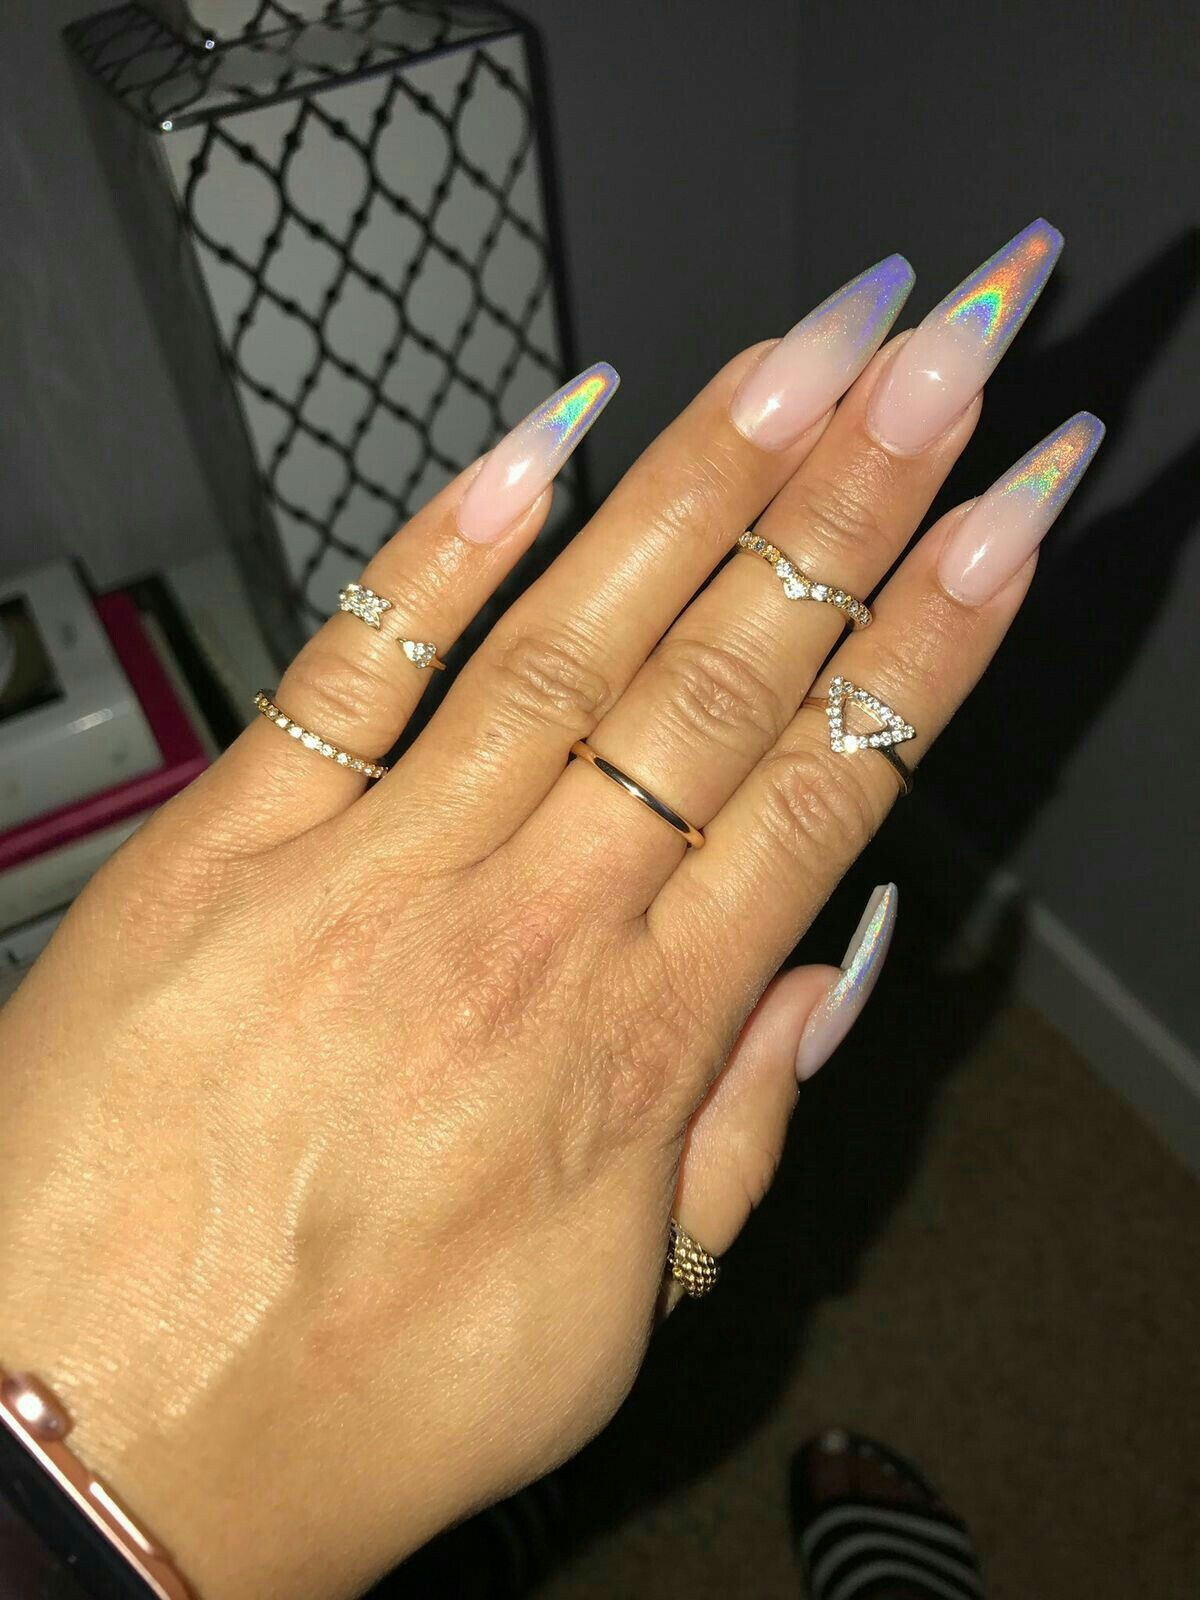 P I N T E R E S T Queenfrayaftw Nail Inspiration